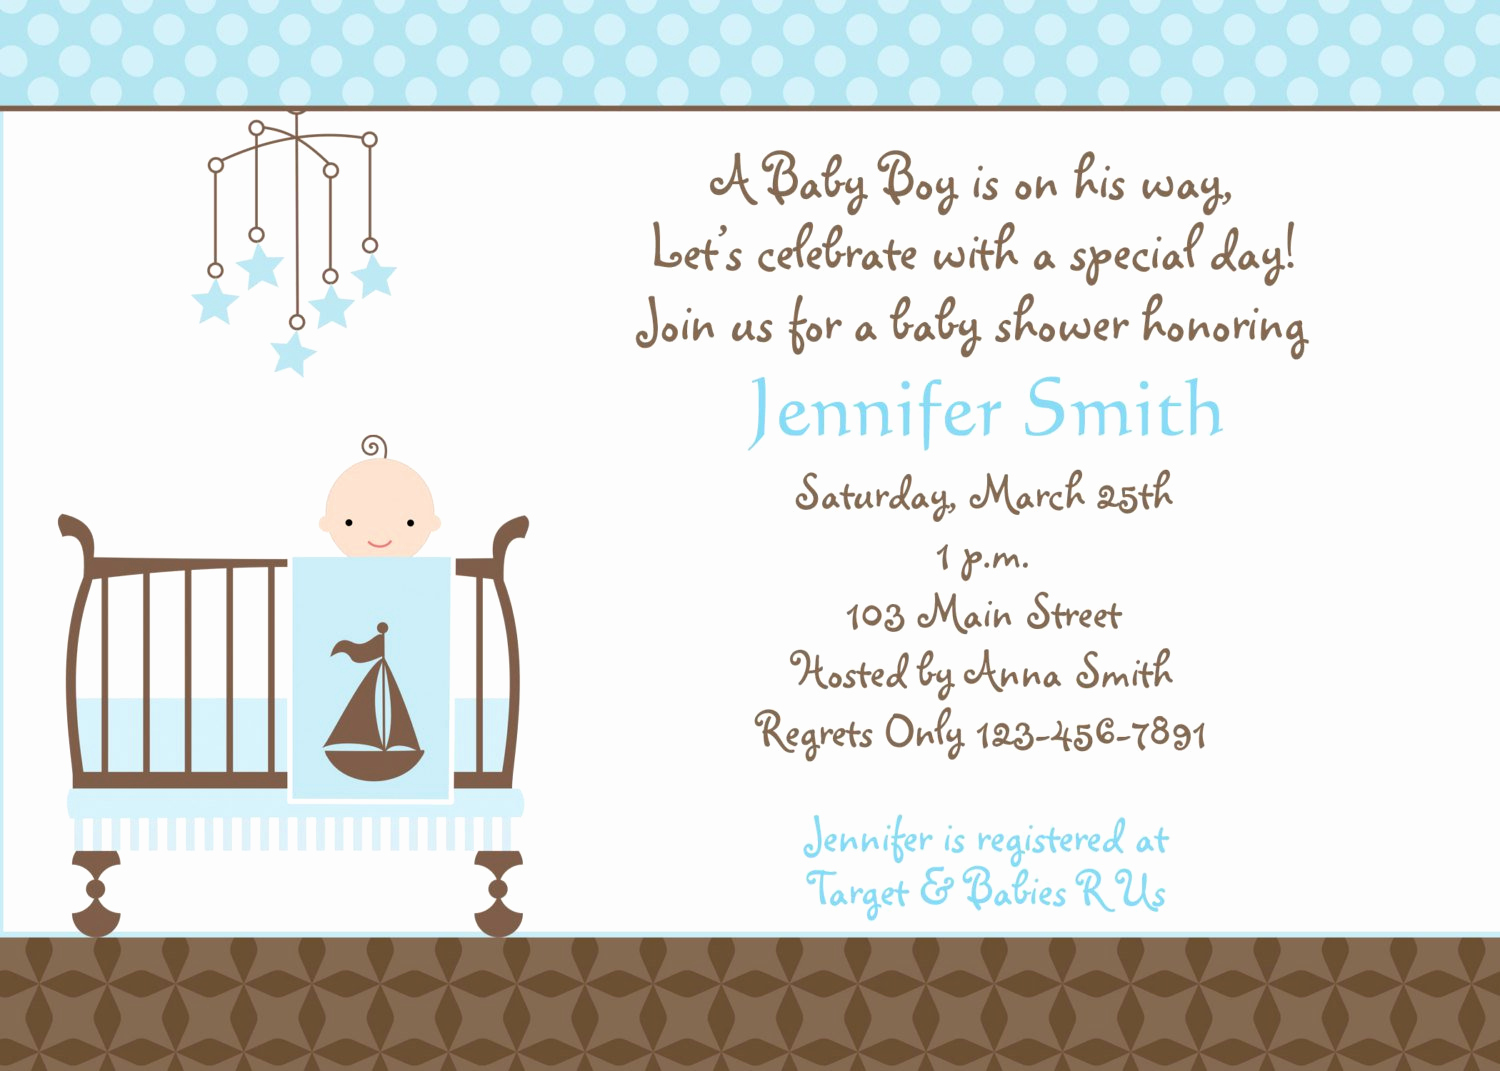 Baby Boy Shower Invitation Wording Elegant Baby Shower Invitation Templates Baby Shower Invitation